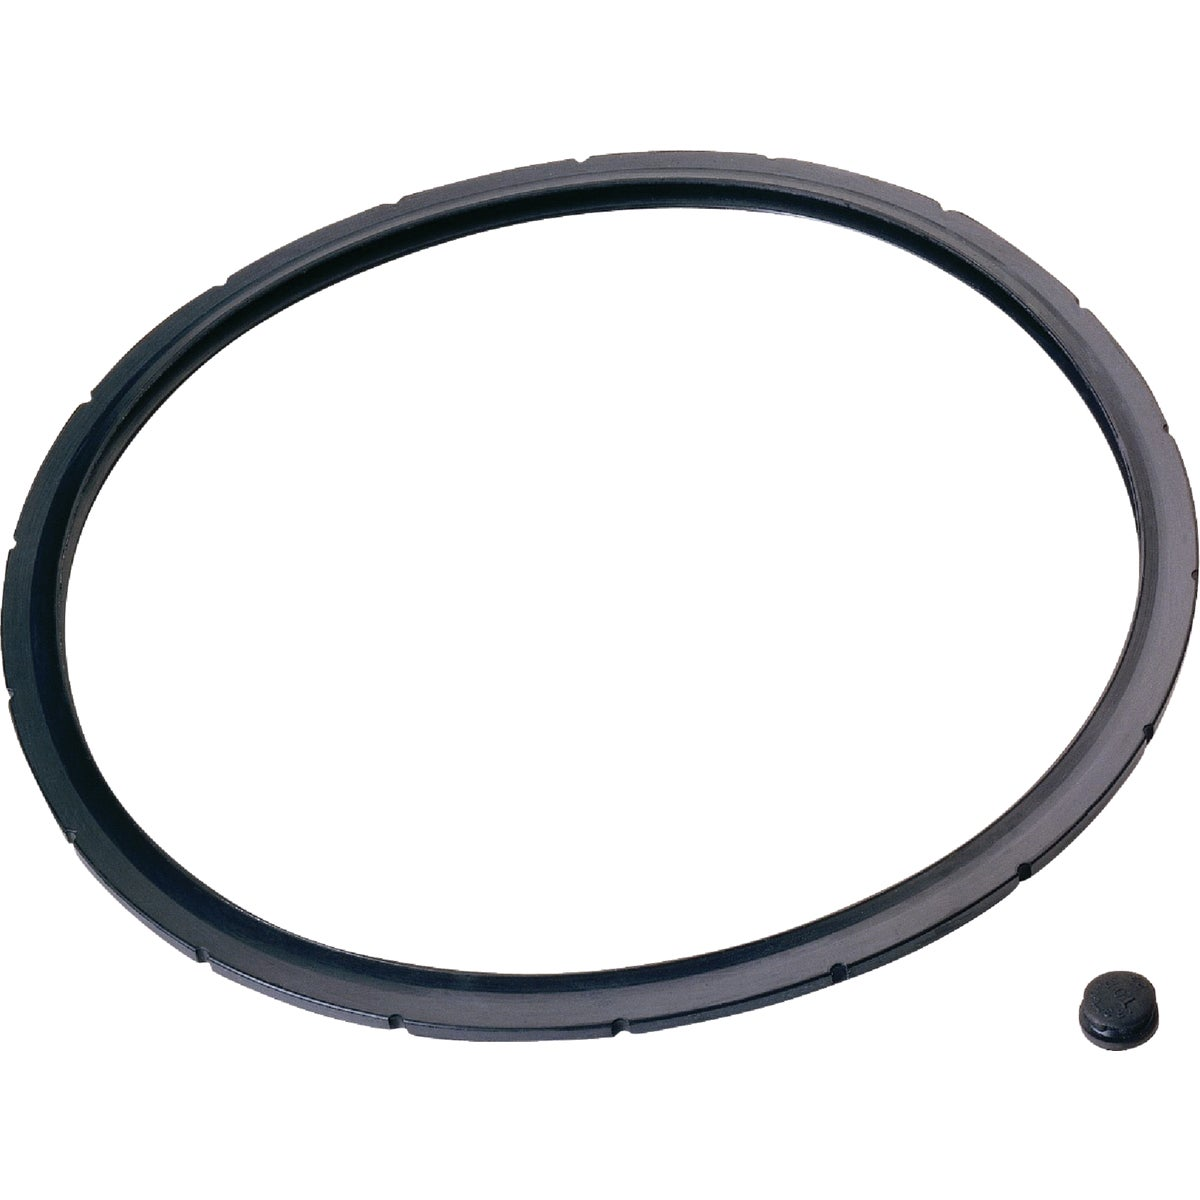 SEALING RING - 09985 by National Presto